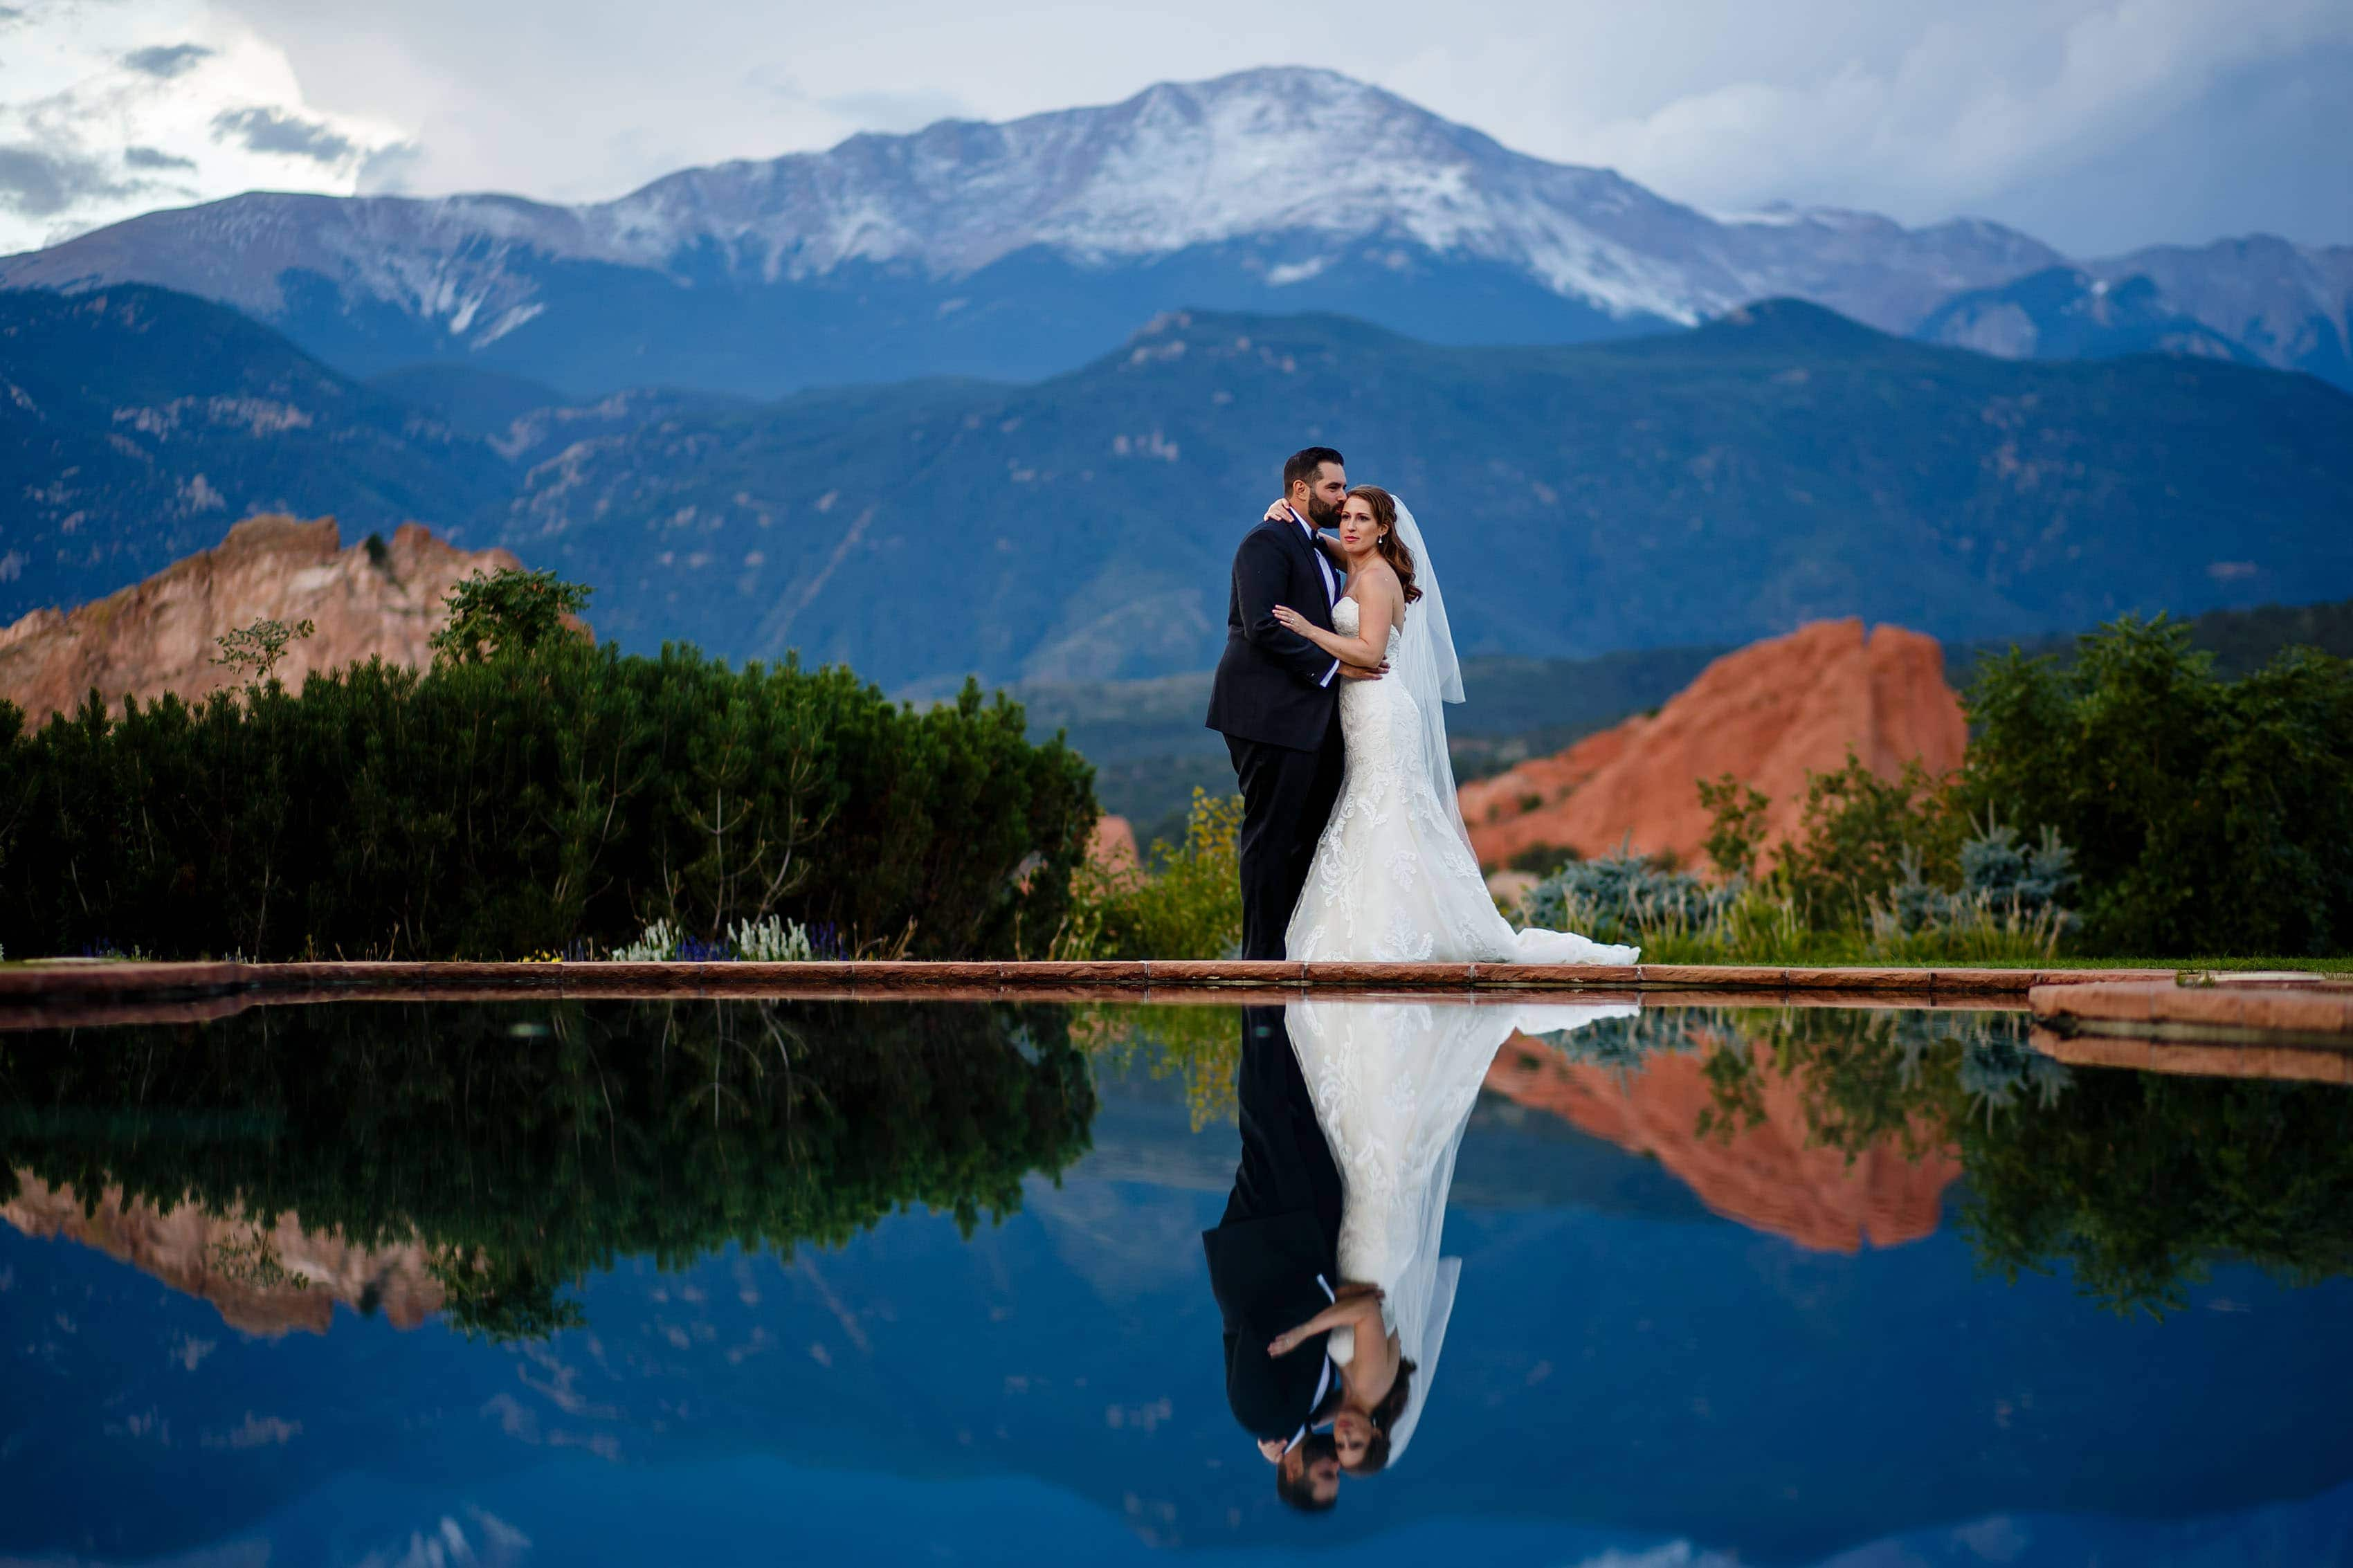 Reflected by the pool, Devan and Joshua share a moment together as Pikes Peak provides the backdrop after their wedding at Garden of the Gods Club